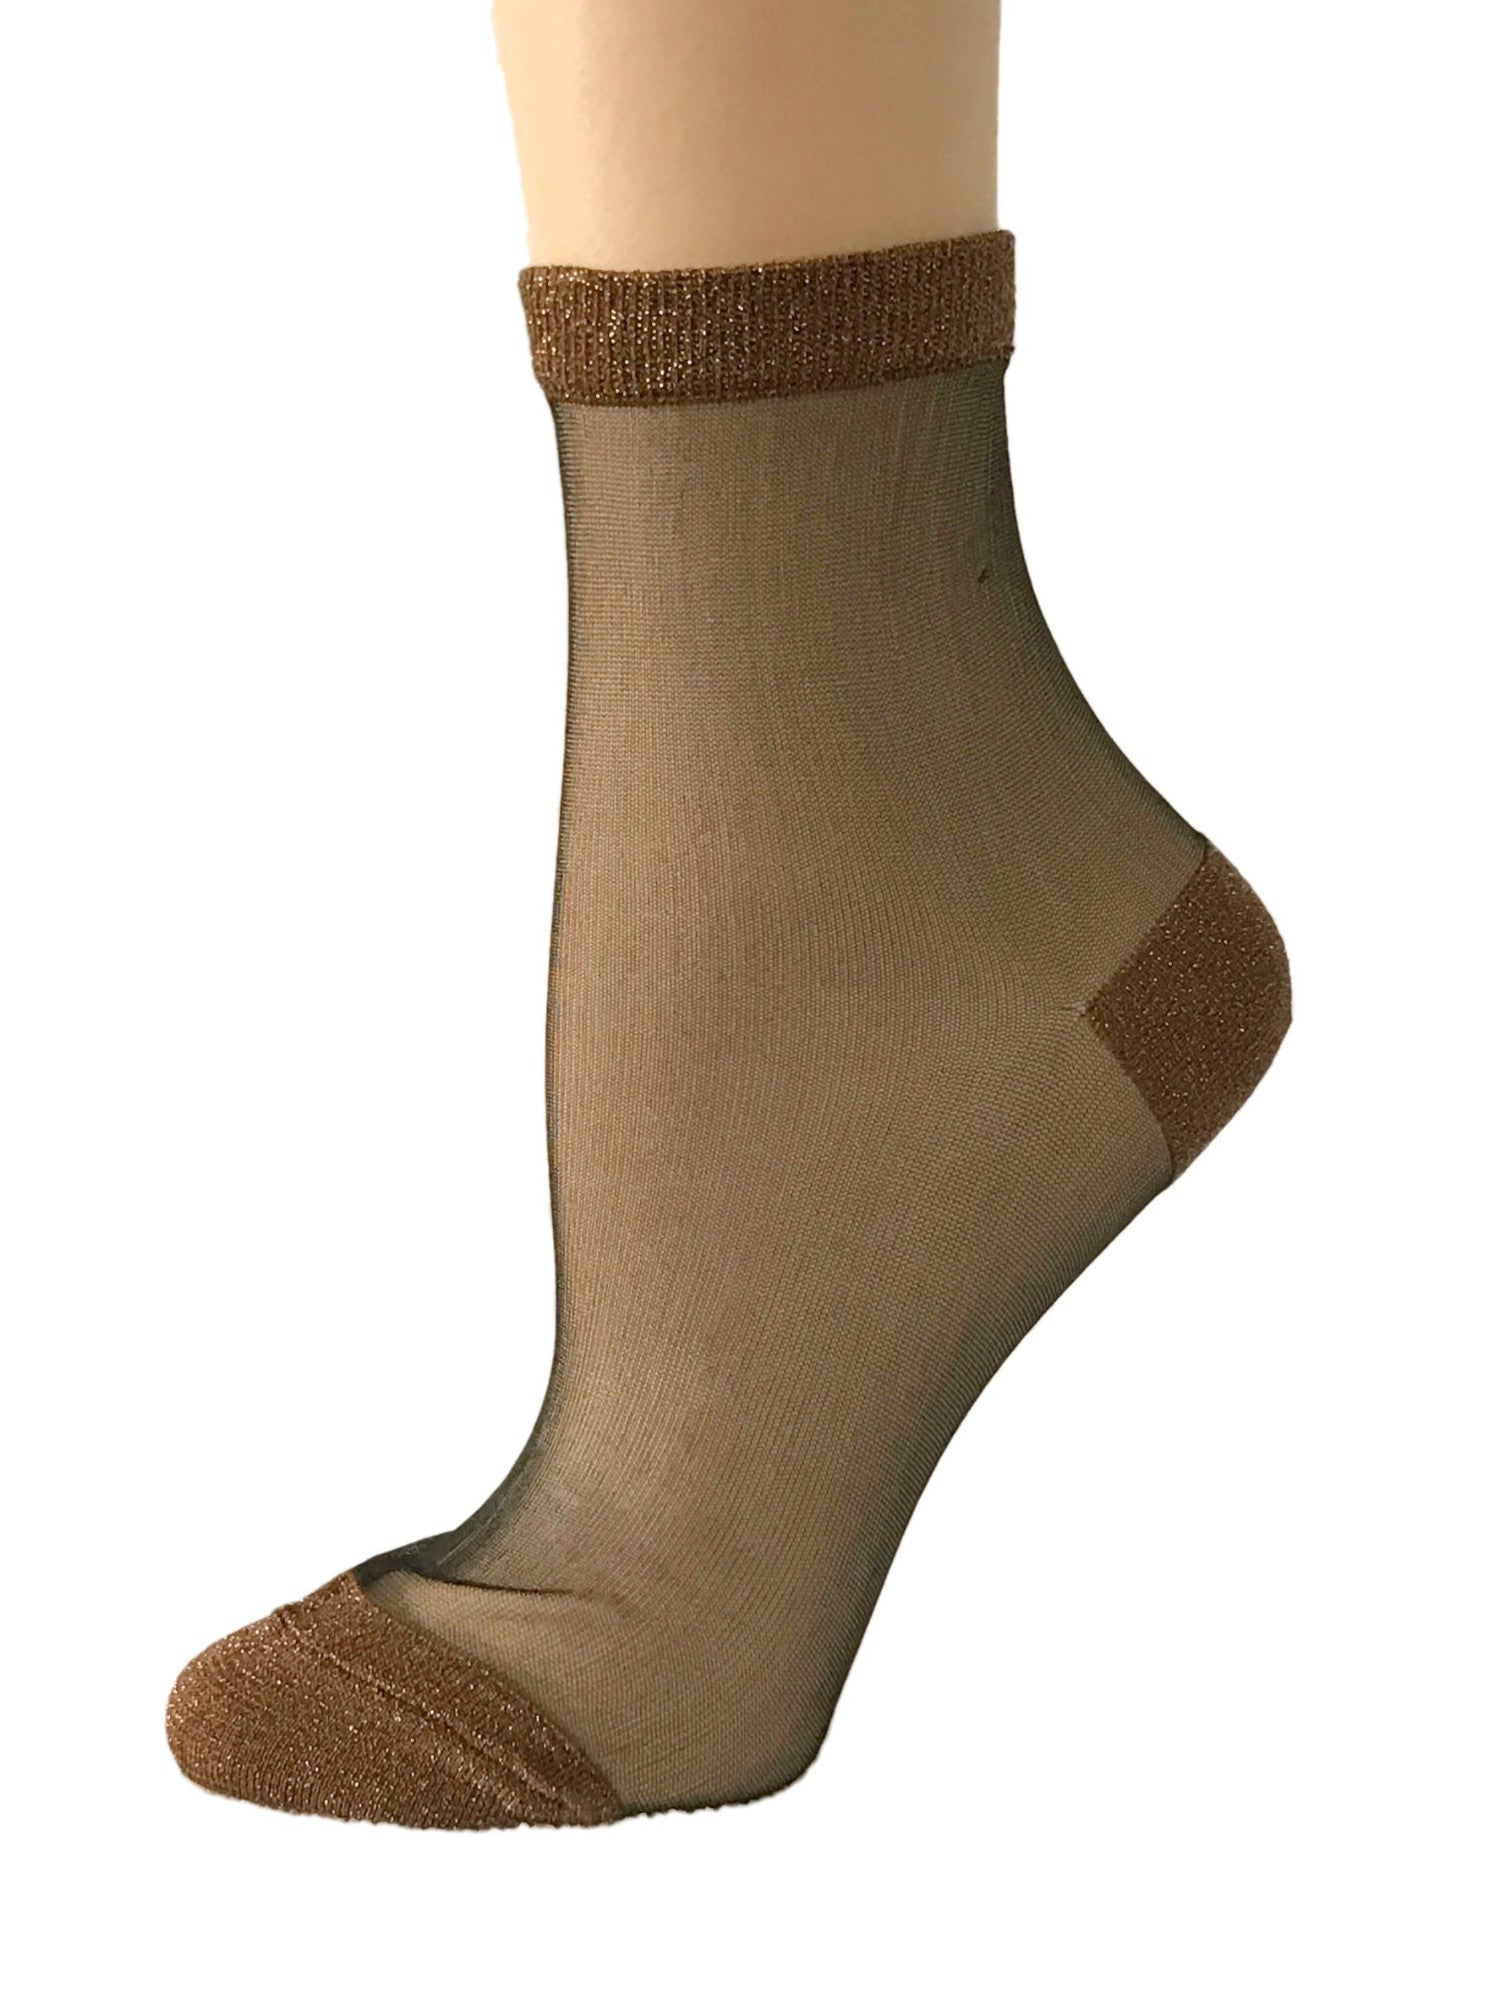 Charming Light Brown Glitter Socks - Global Trendz Fashion®